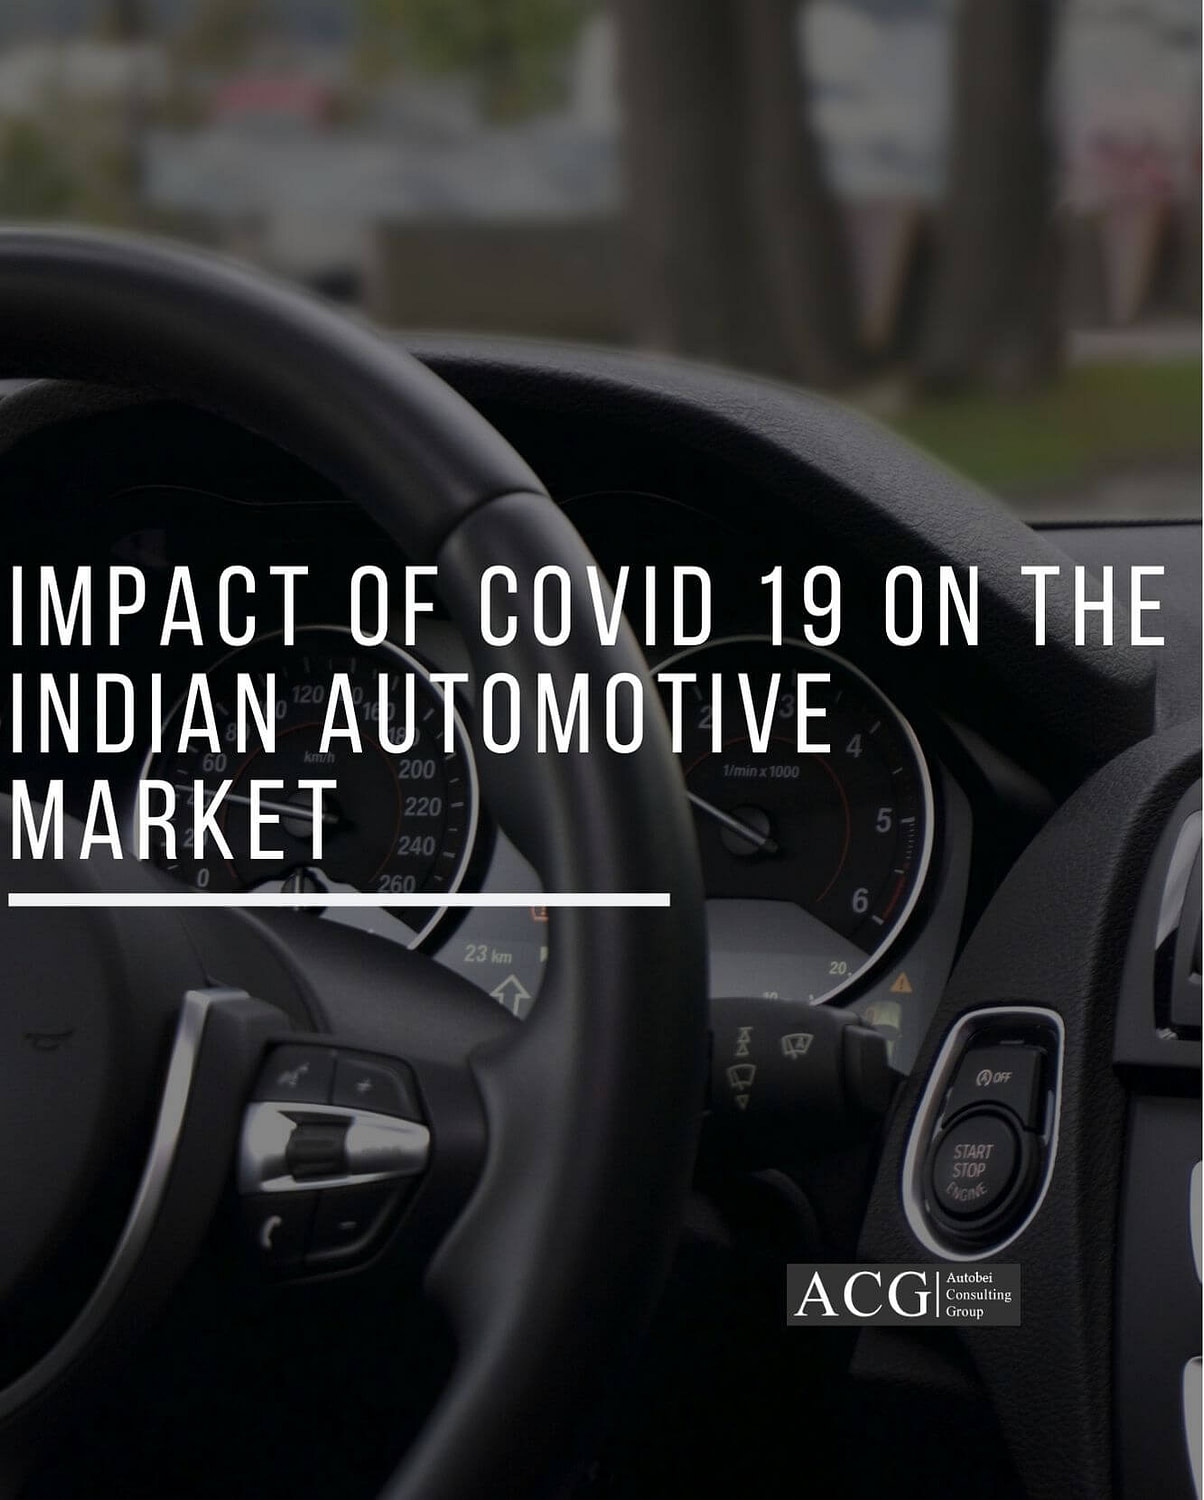 Impact of COVID 19 on the Indian Automotive Market